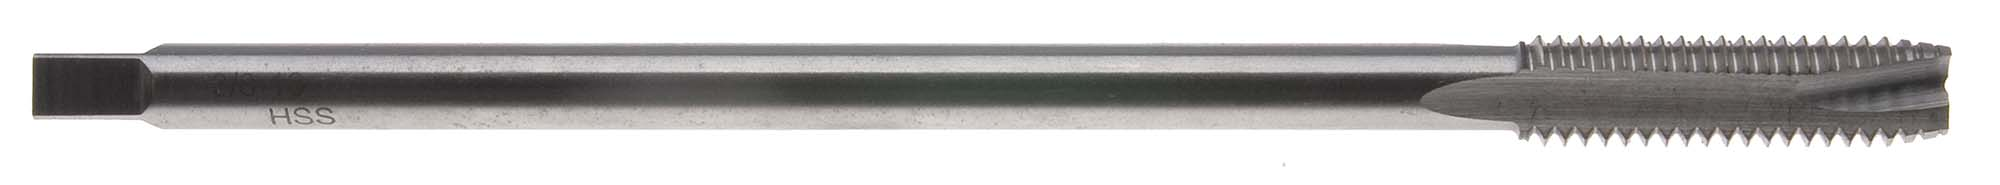 "3/8-24 x 6"" Long Spiral Point Tap with Undercut Shank, High Speed Steel"